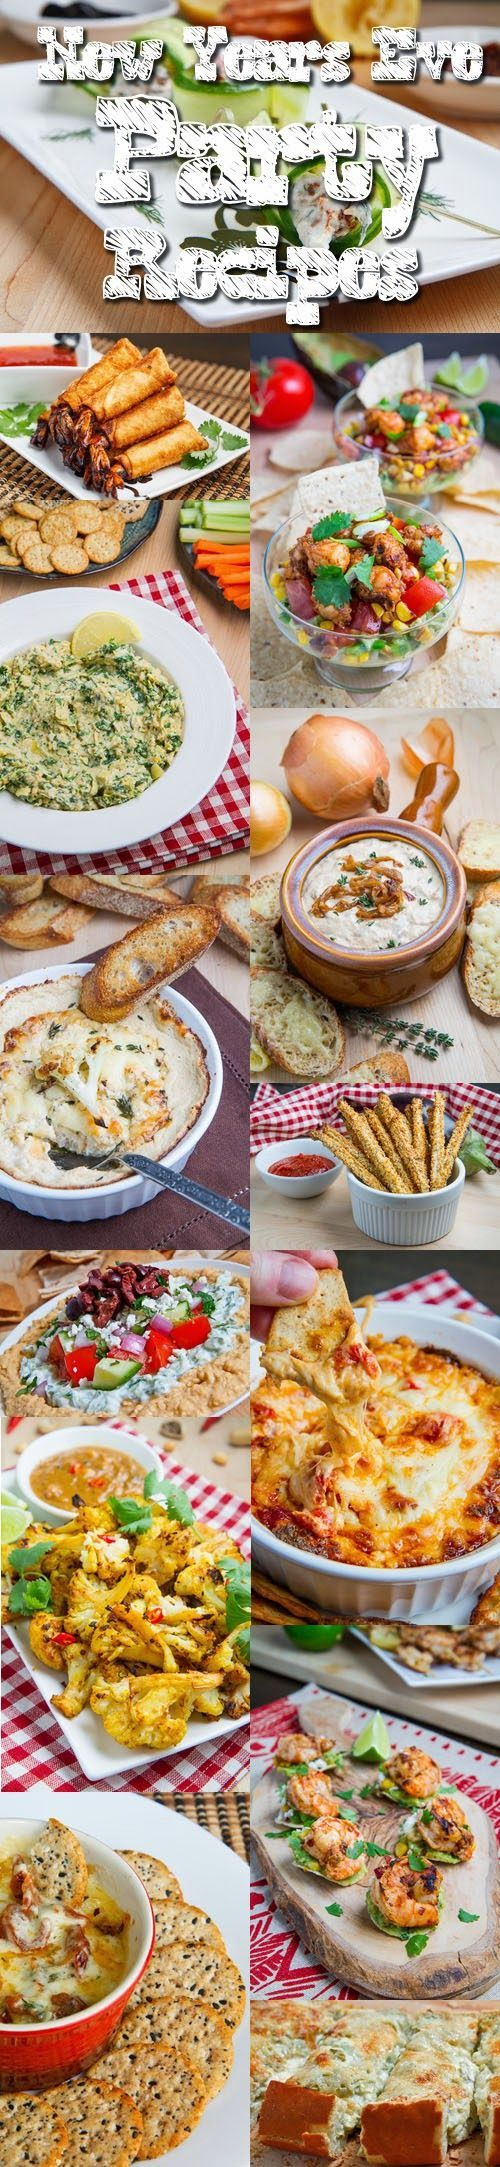 48 best new year 39 s eve party ideas images on pinterest for Appetizer ideas for new years eve party